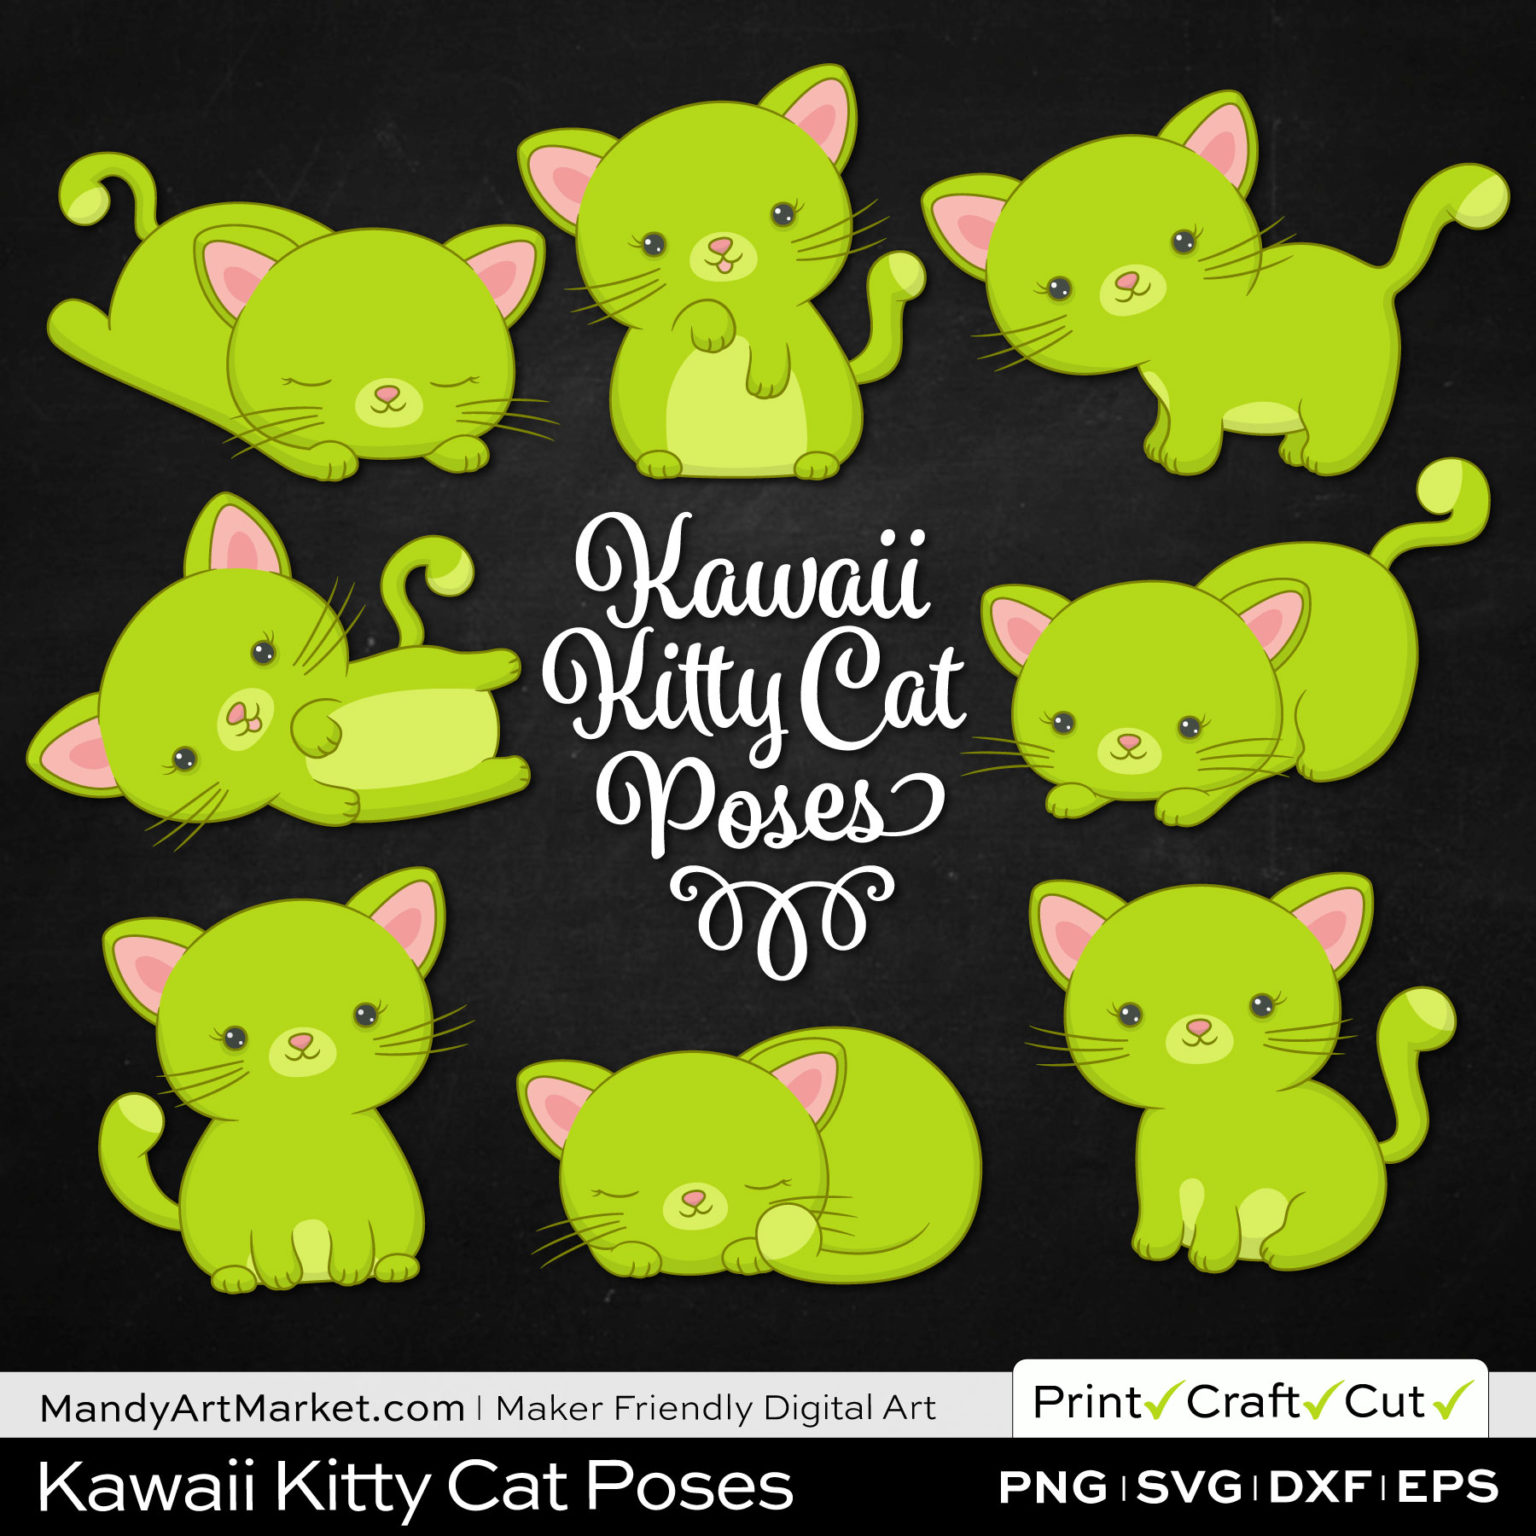 Chartreuse Green Kawaii Kitty Cat Poses Clipart on Black Background